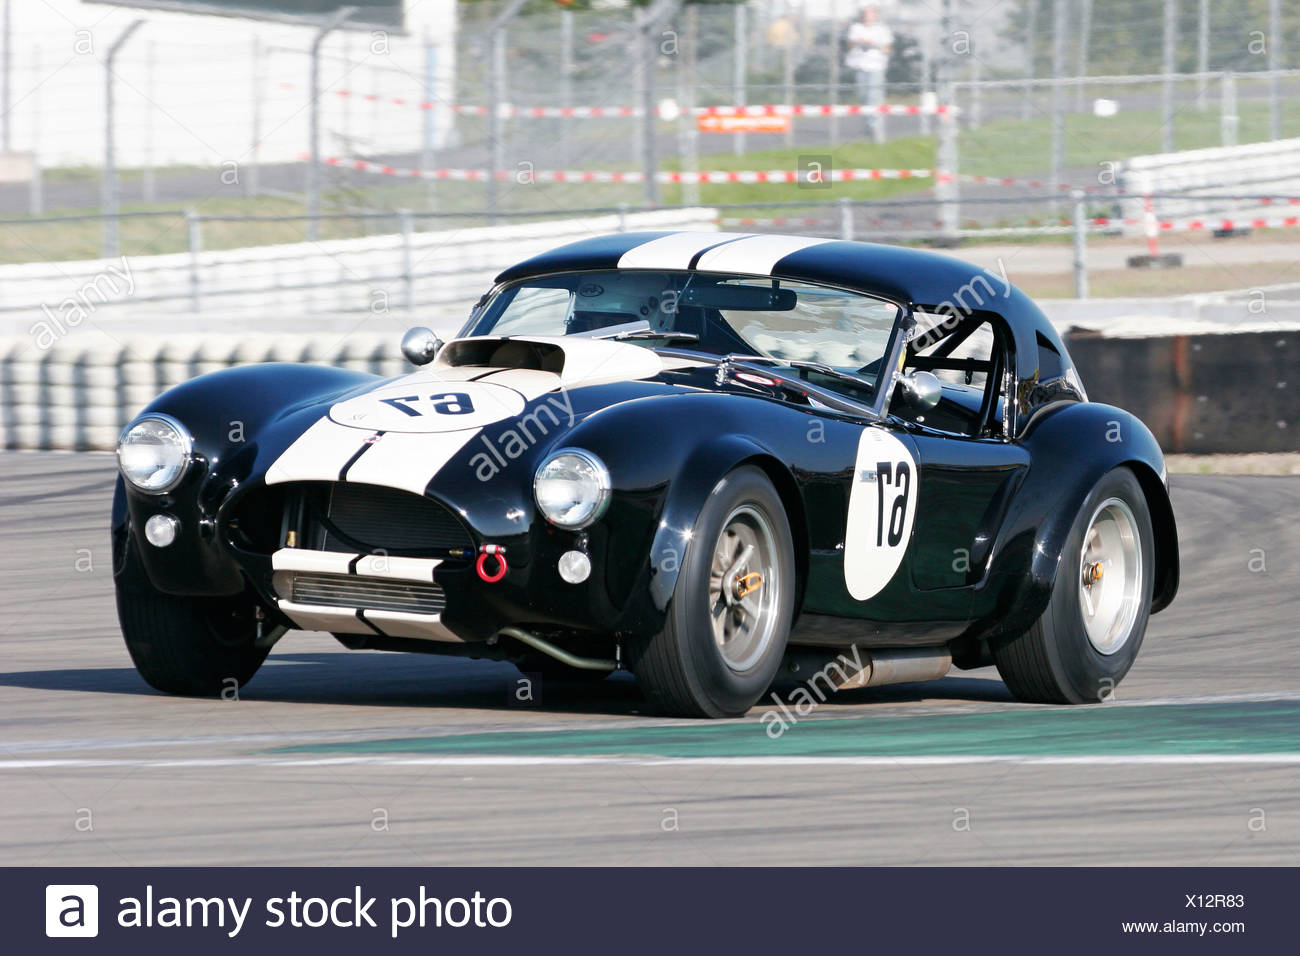 Vintage Race Cars Stock Photos & Vintage Race Cars Stock Images - Alamy